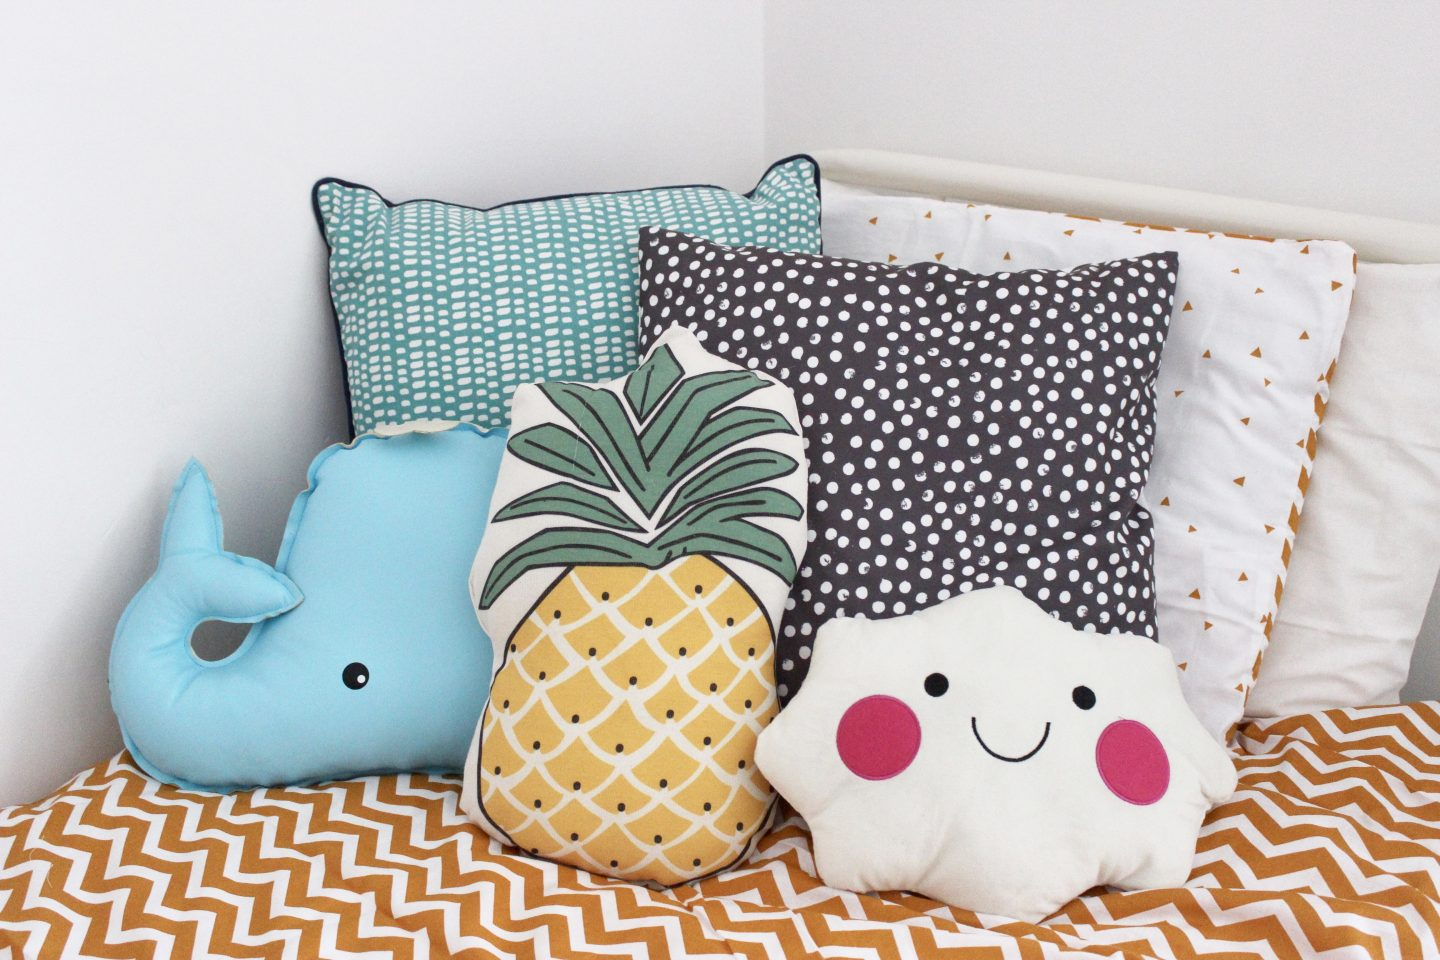 Maxs bedroom makeover featuring vertbaudet emma plus three large blue cushion sainsburys spotty cushion ikea whale cushion ebay pineapple cushion ebay cloud cushion ebay gumiabroncs